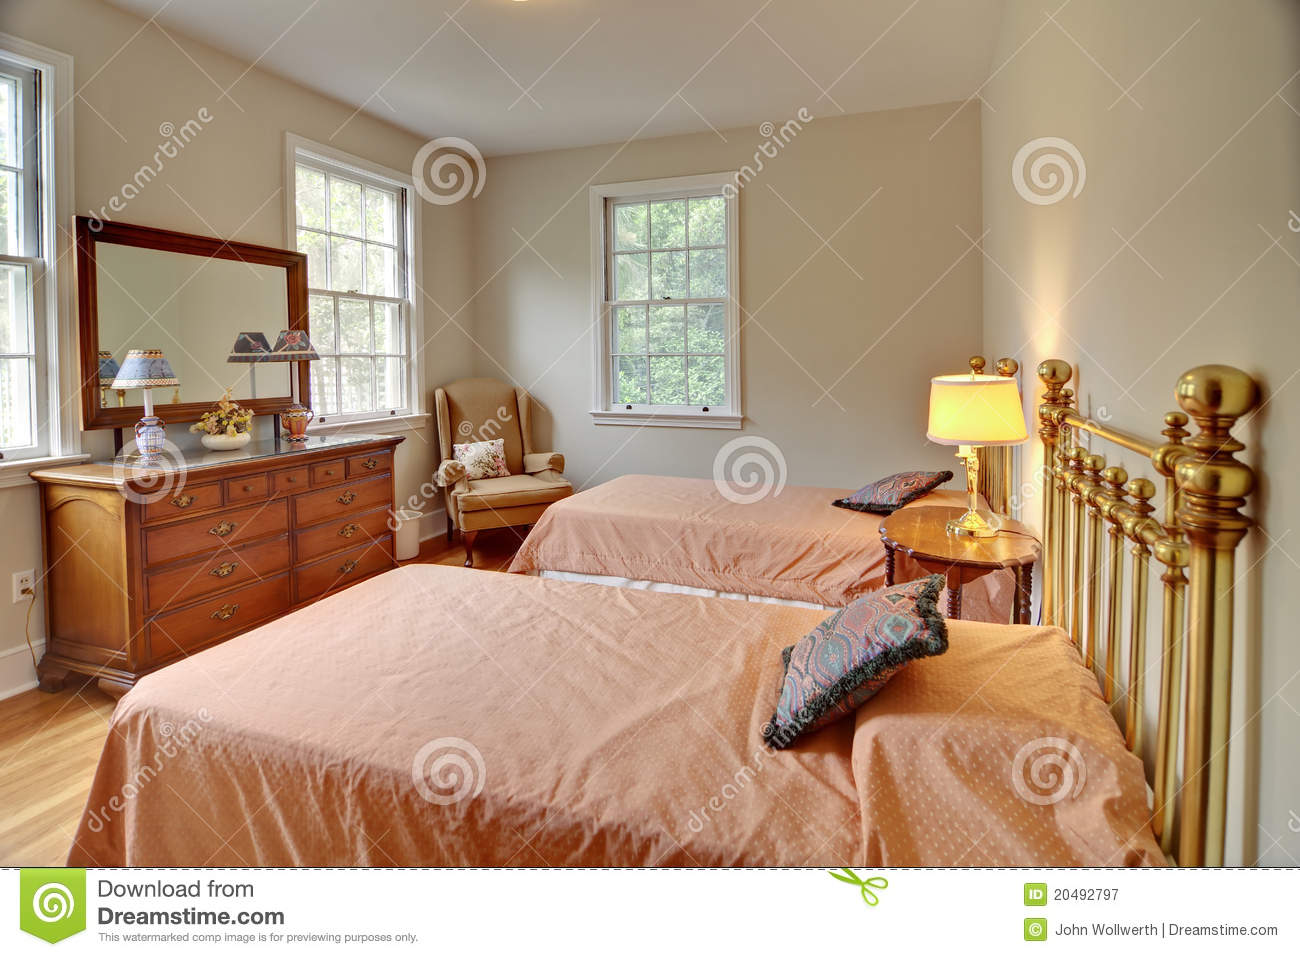 Chambre coucher traditionnelle photographie stock libre for Photo de chambre a coucher